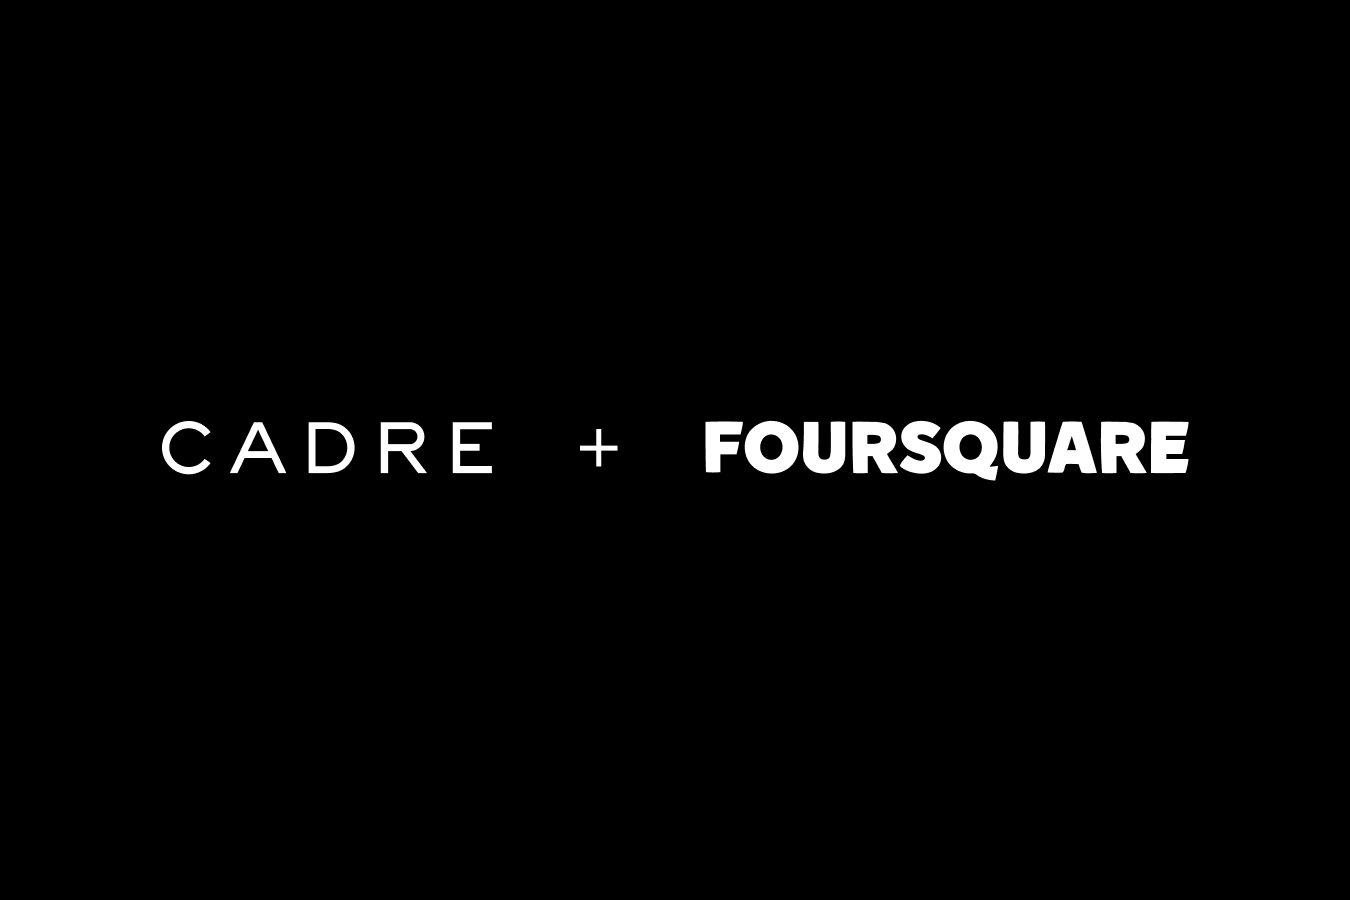 Cadre Partners with Foursquare to Further Transform Commercial Real Estate Investing